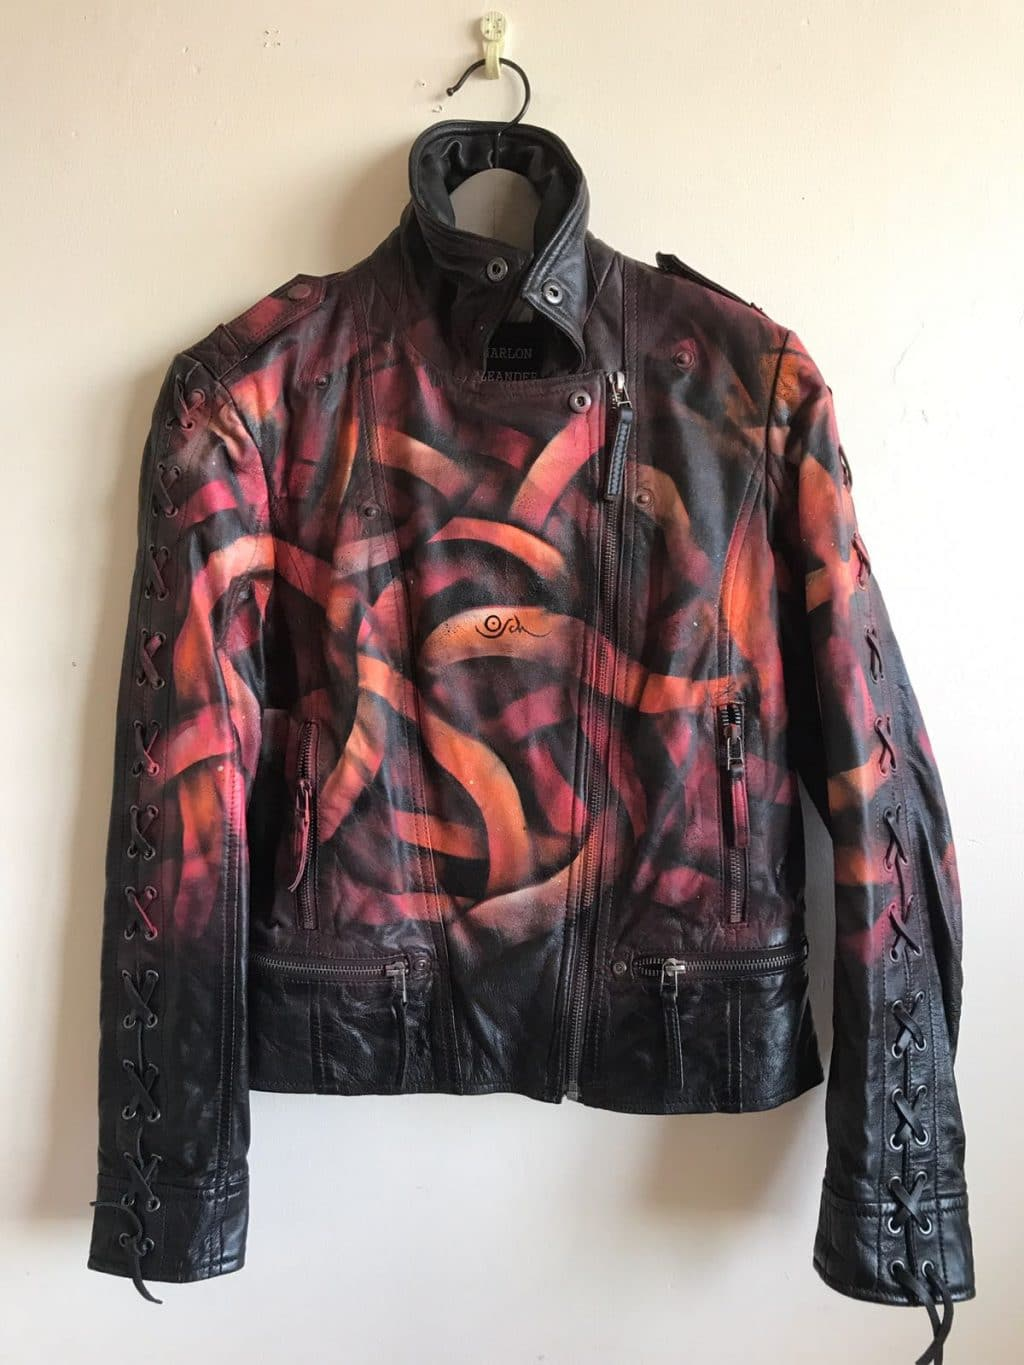 Stenciled Leather Jacket for Berlin based fashion label GALAXO GIRL